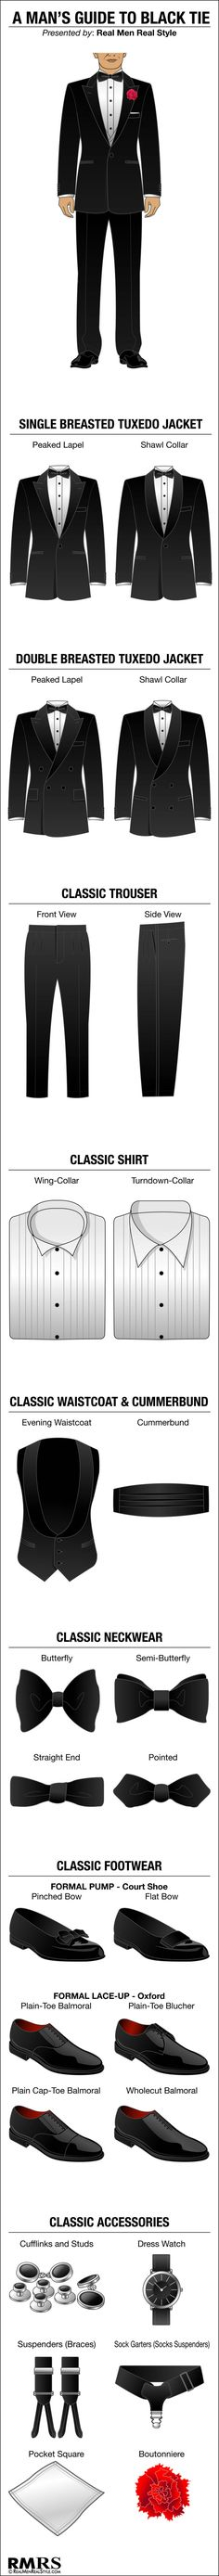 Booooo to the pleated pants and 1 button I like 2 but hey ! How To Wear Black Tie Infographic – Visual Guide To Wearing A Tuxedo (via Covelo Covelo Covelo Covelo Covelo Centeno) Wearing A Tuxedo, Wearing Black, Der Gentleman, Gentleman Style, Sharp Dressed Man, Well Dressed Men, Fashion Moda, Mens Fashion, Black Tie Tuxedo